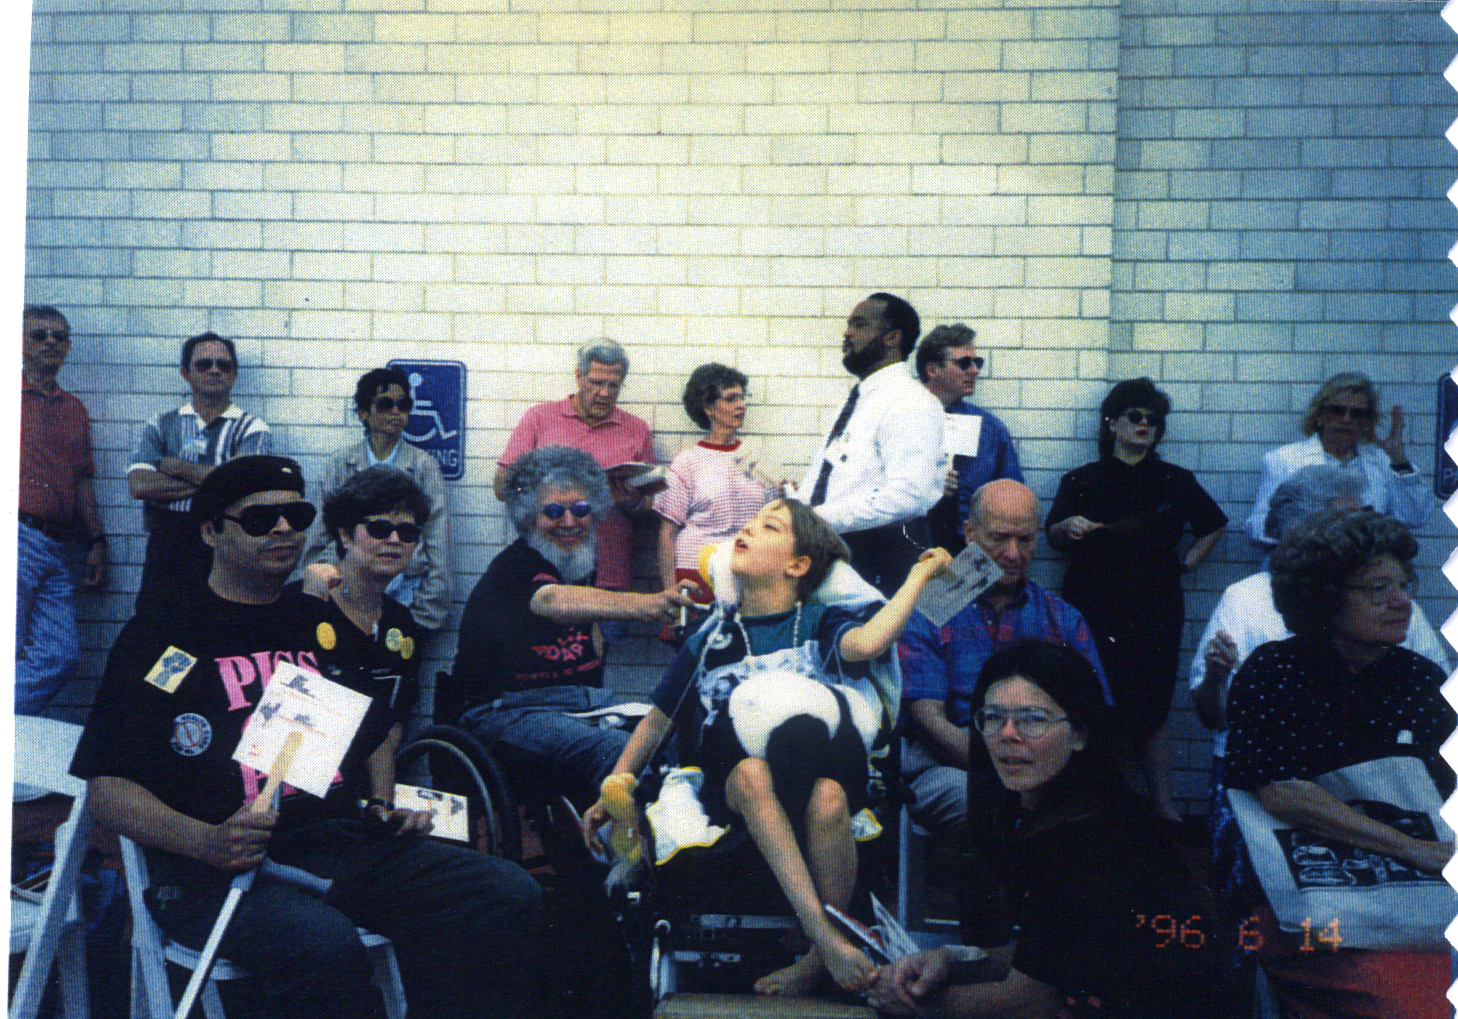 Bryce Thomas and Bob Kafka are surrounded by Texas ADAPTers protesting in front of white brick wall. Also visible are (L-R) Noel Velez, Carolyn Long, and Janet Thomas in foreground